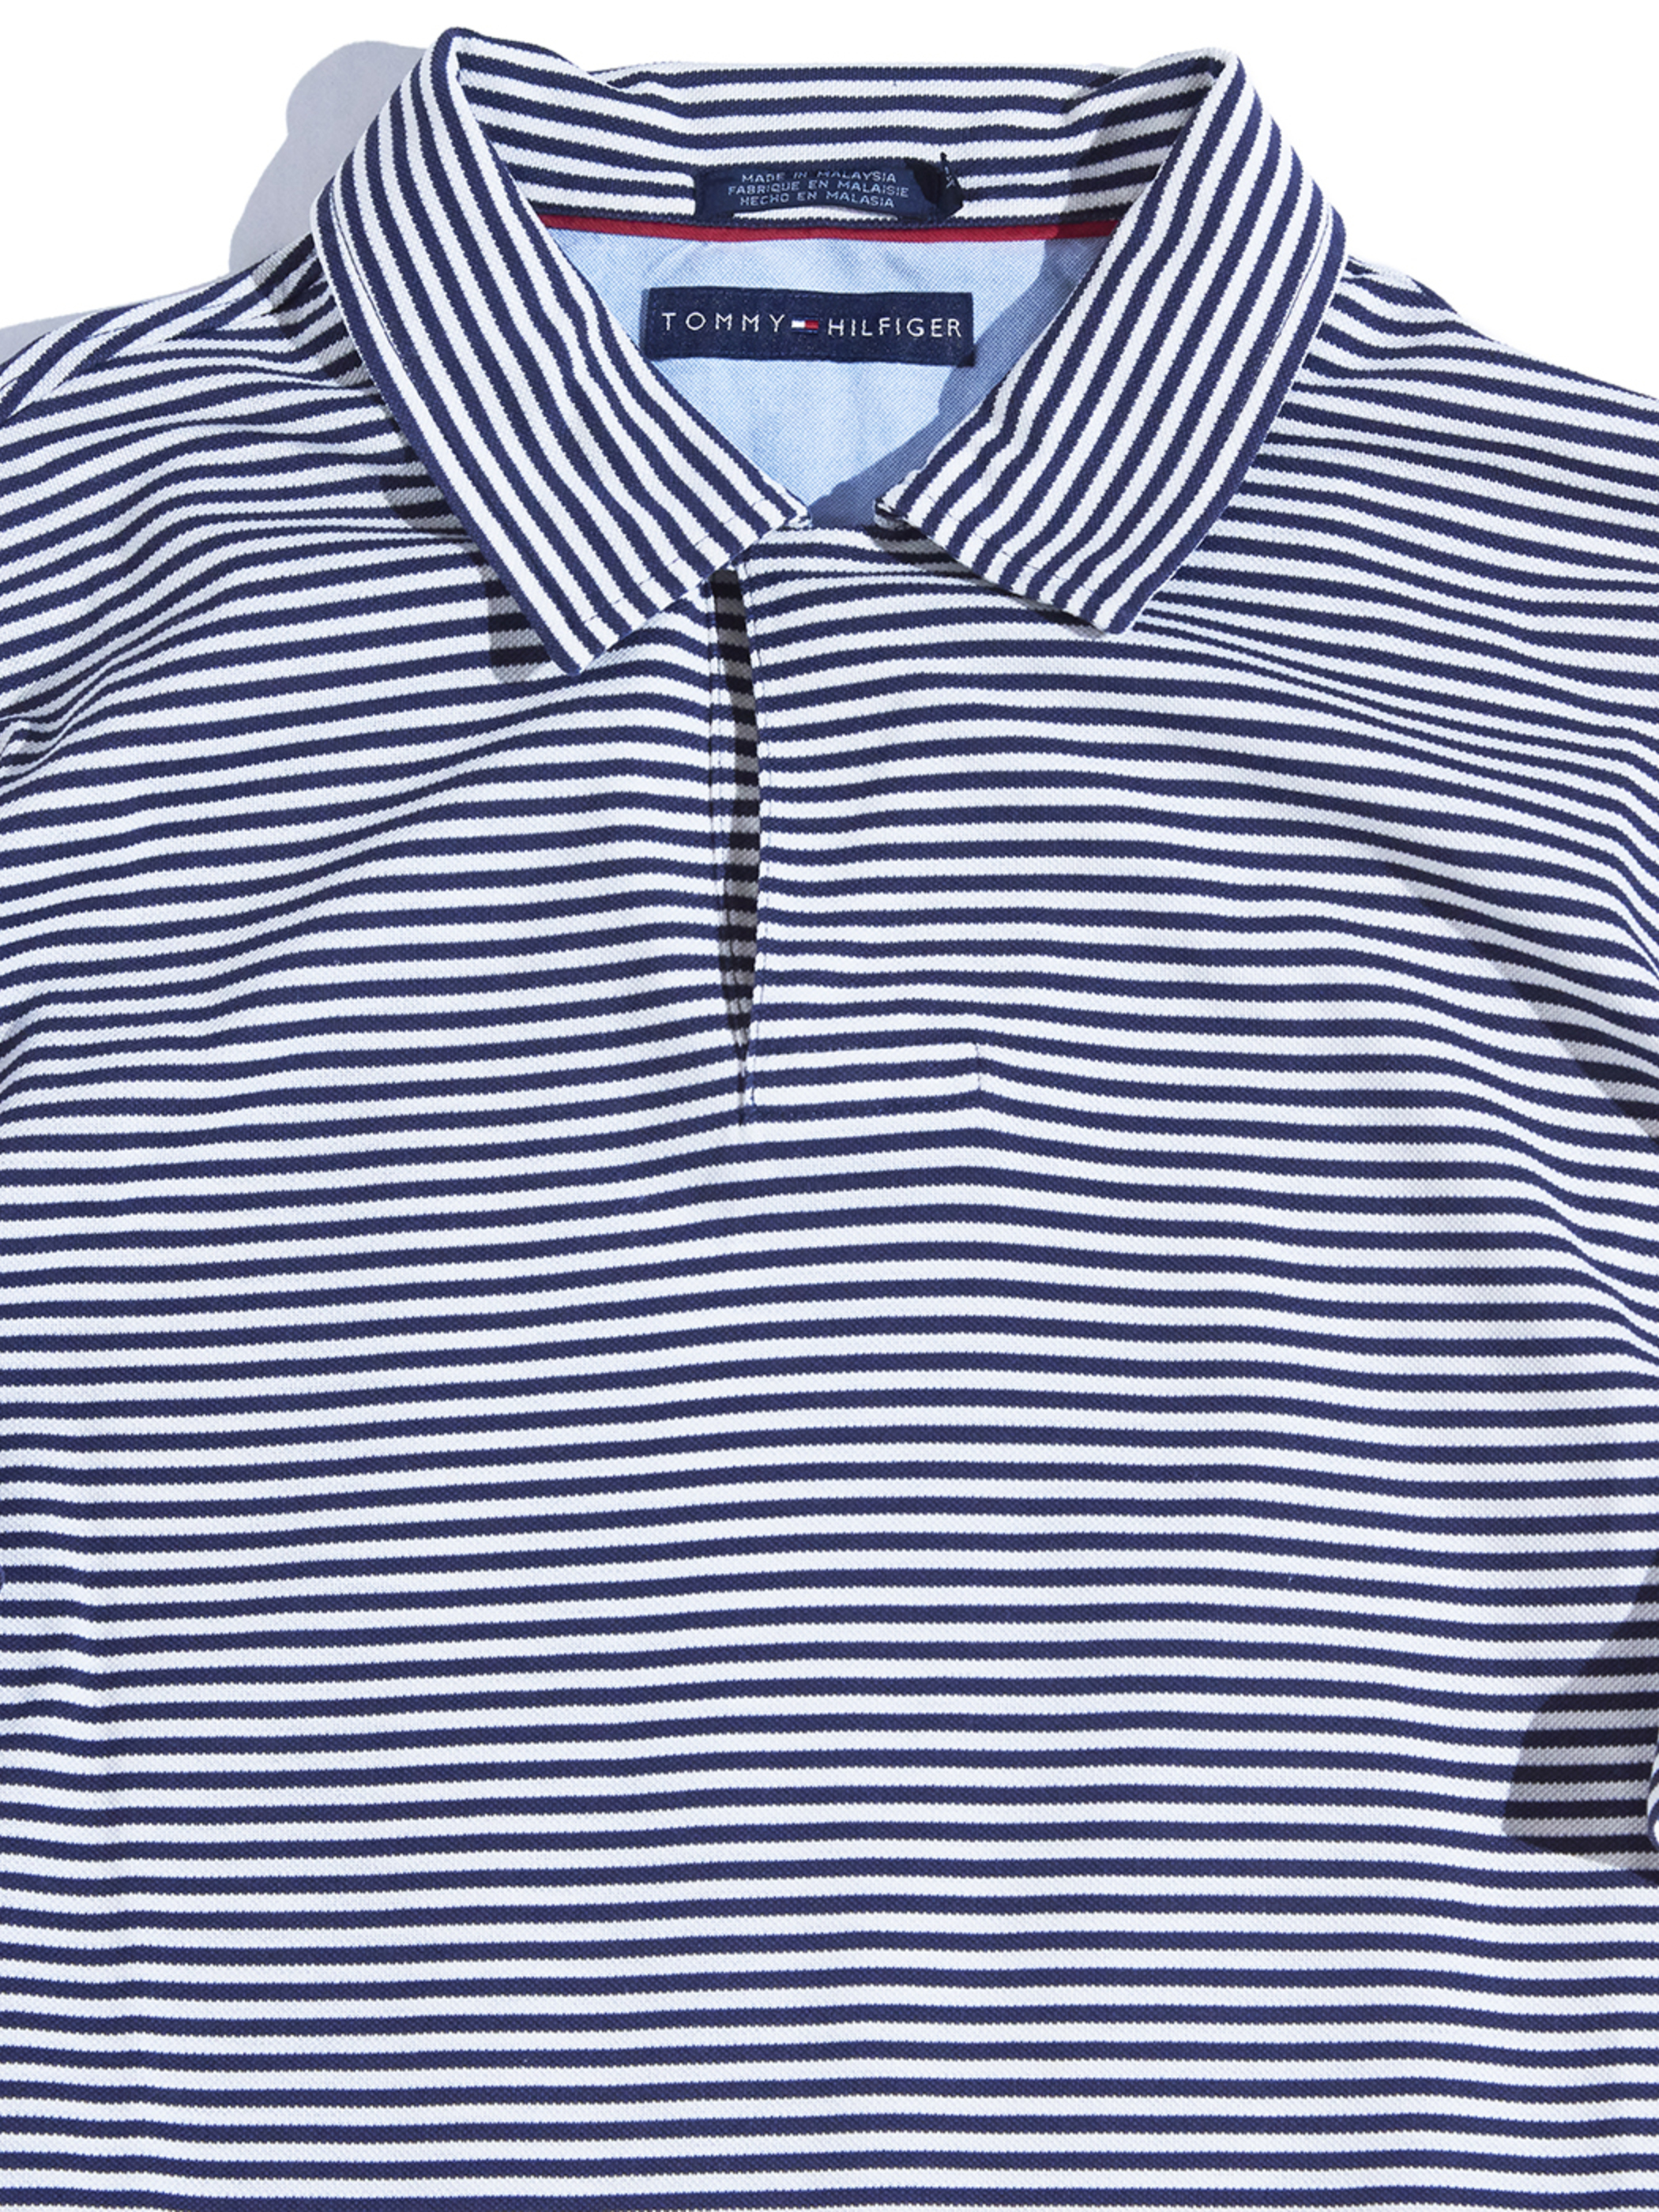 "2000s ""TOMMY HILFIGER"" border polo shirt -NAVY-"